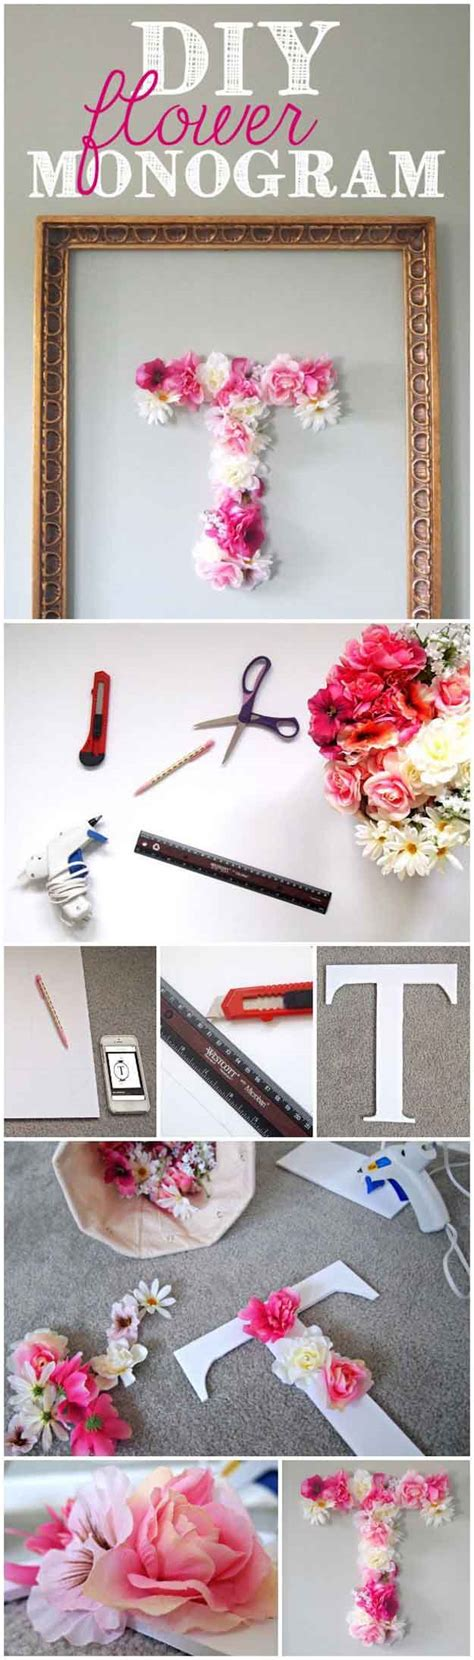 and craft ideas for room decoration 37 insanely bedroom ideas for diy decor crafts